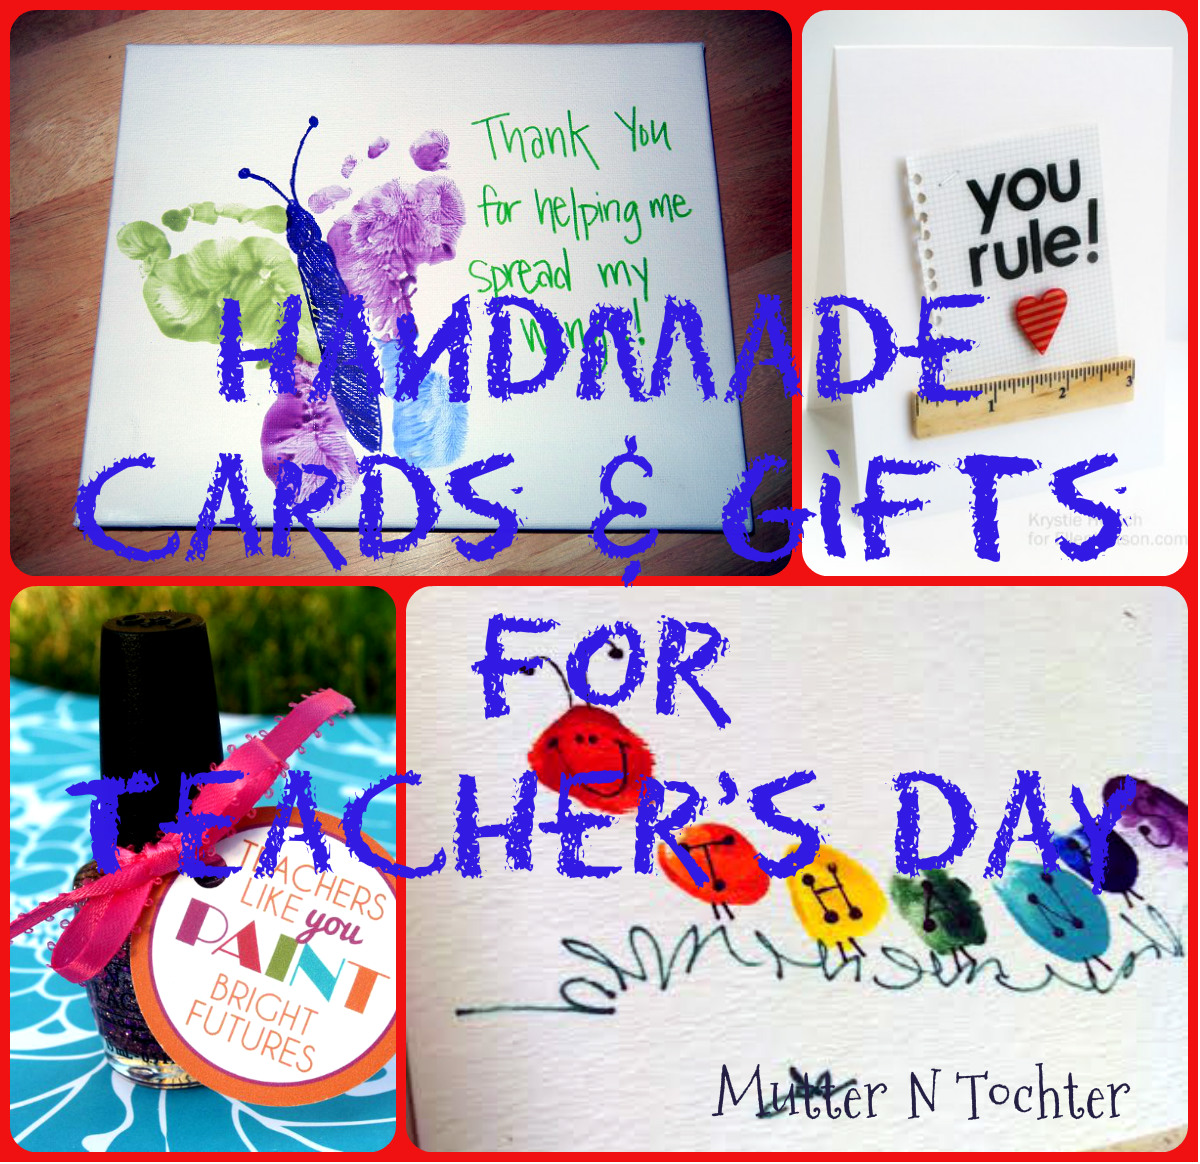 7 Last Minute Handmade Gifts And Cards For Teachers Day Mutter N